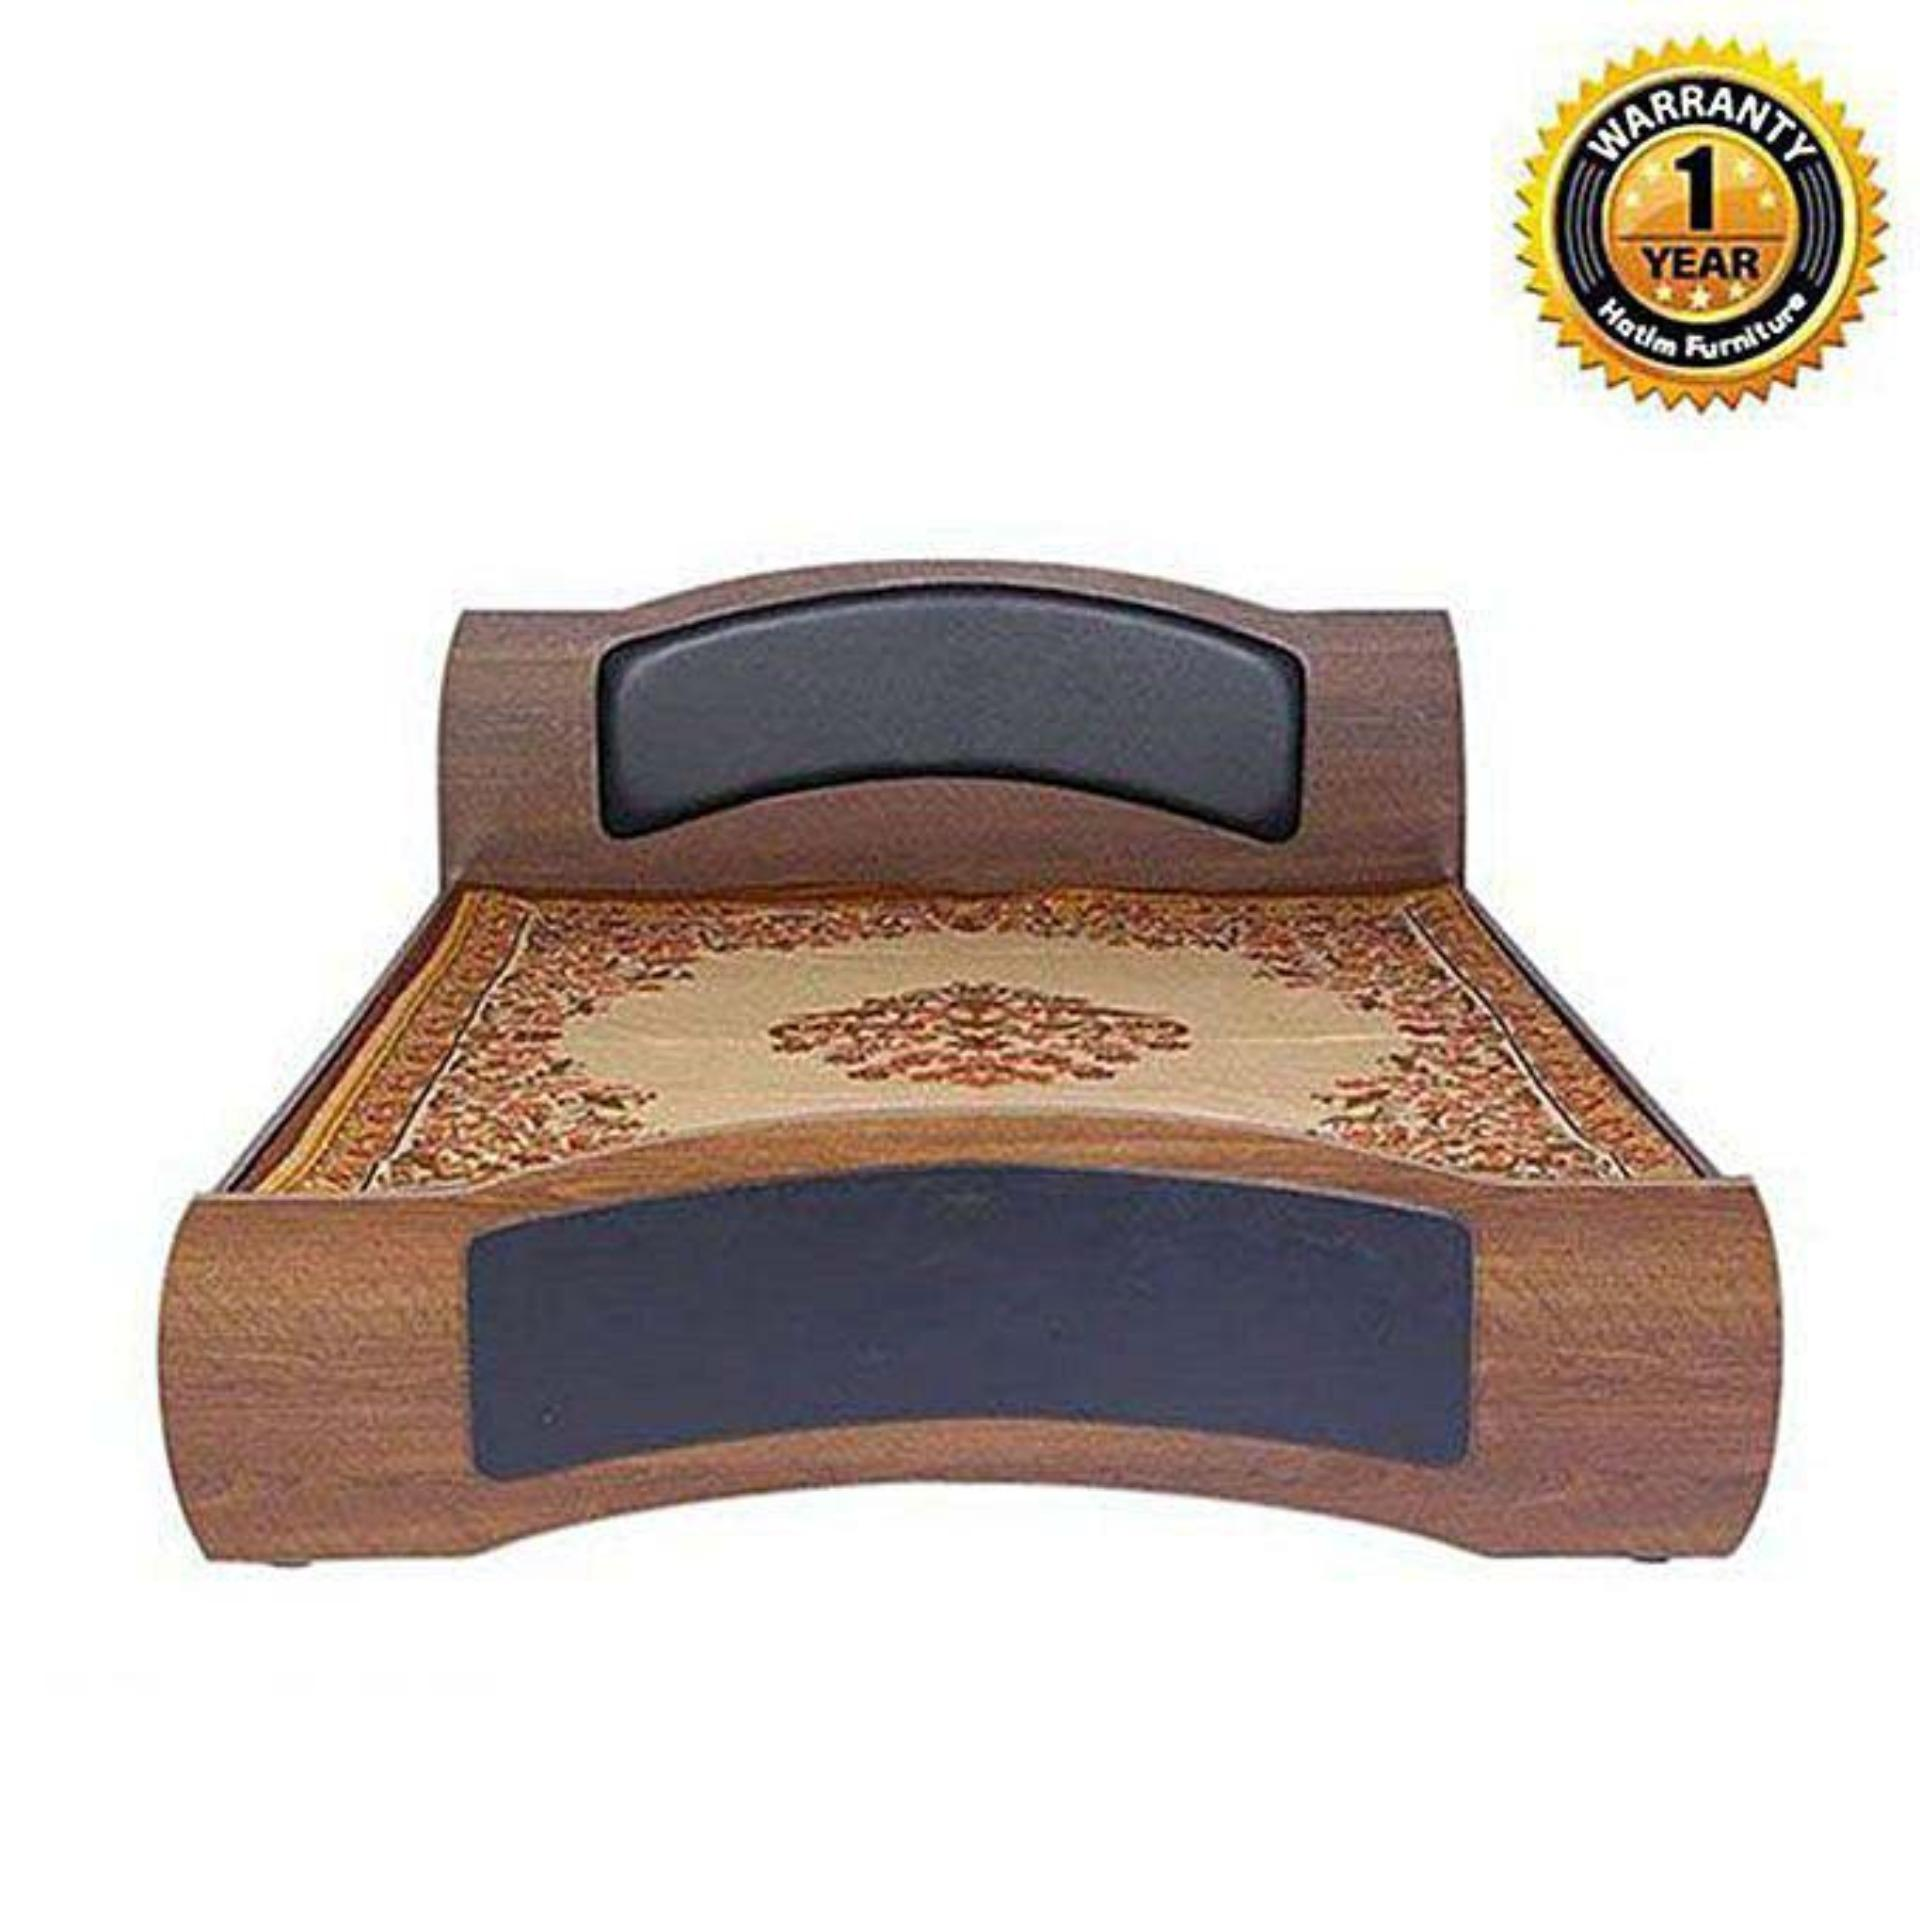 Buying A Couch Online: Furniture Price In Bangladesh